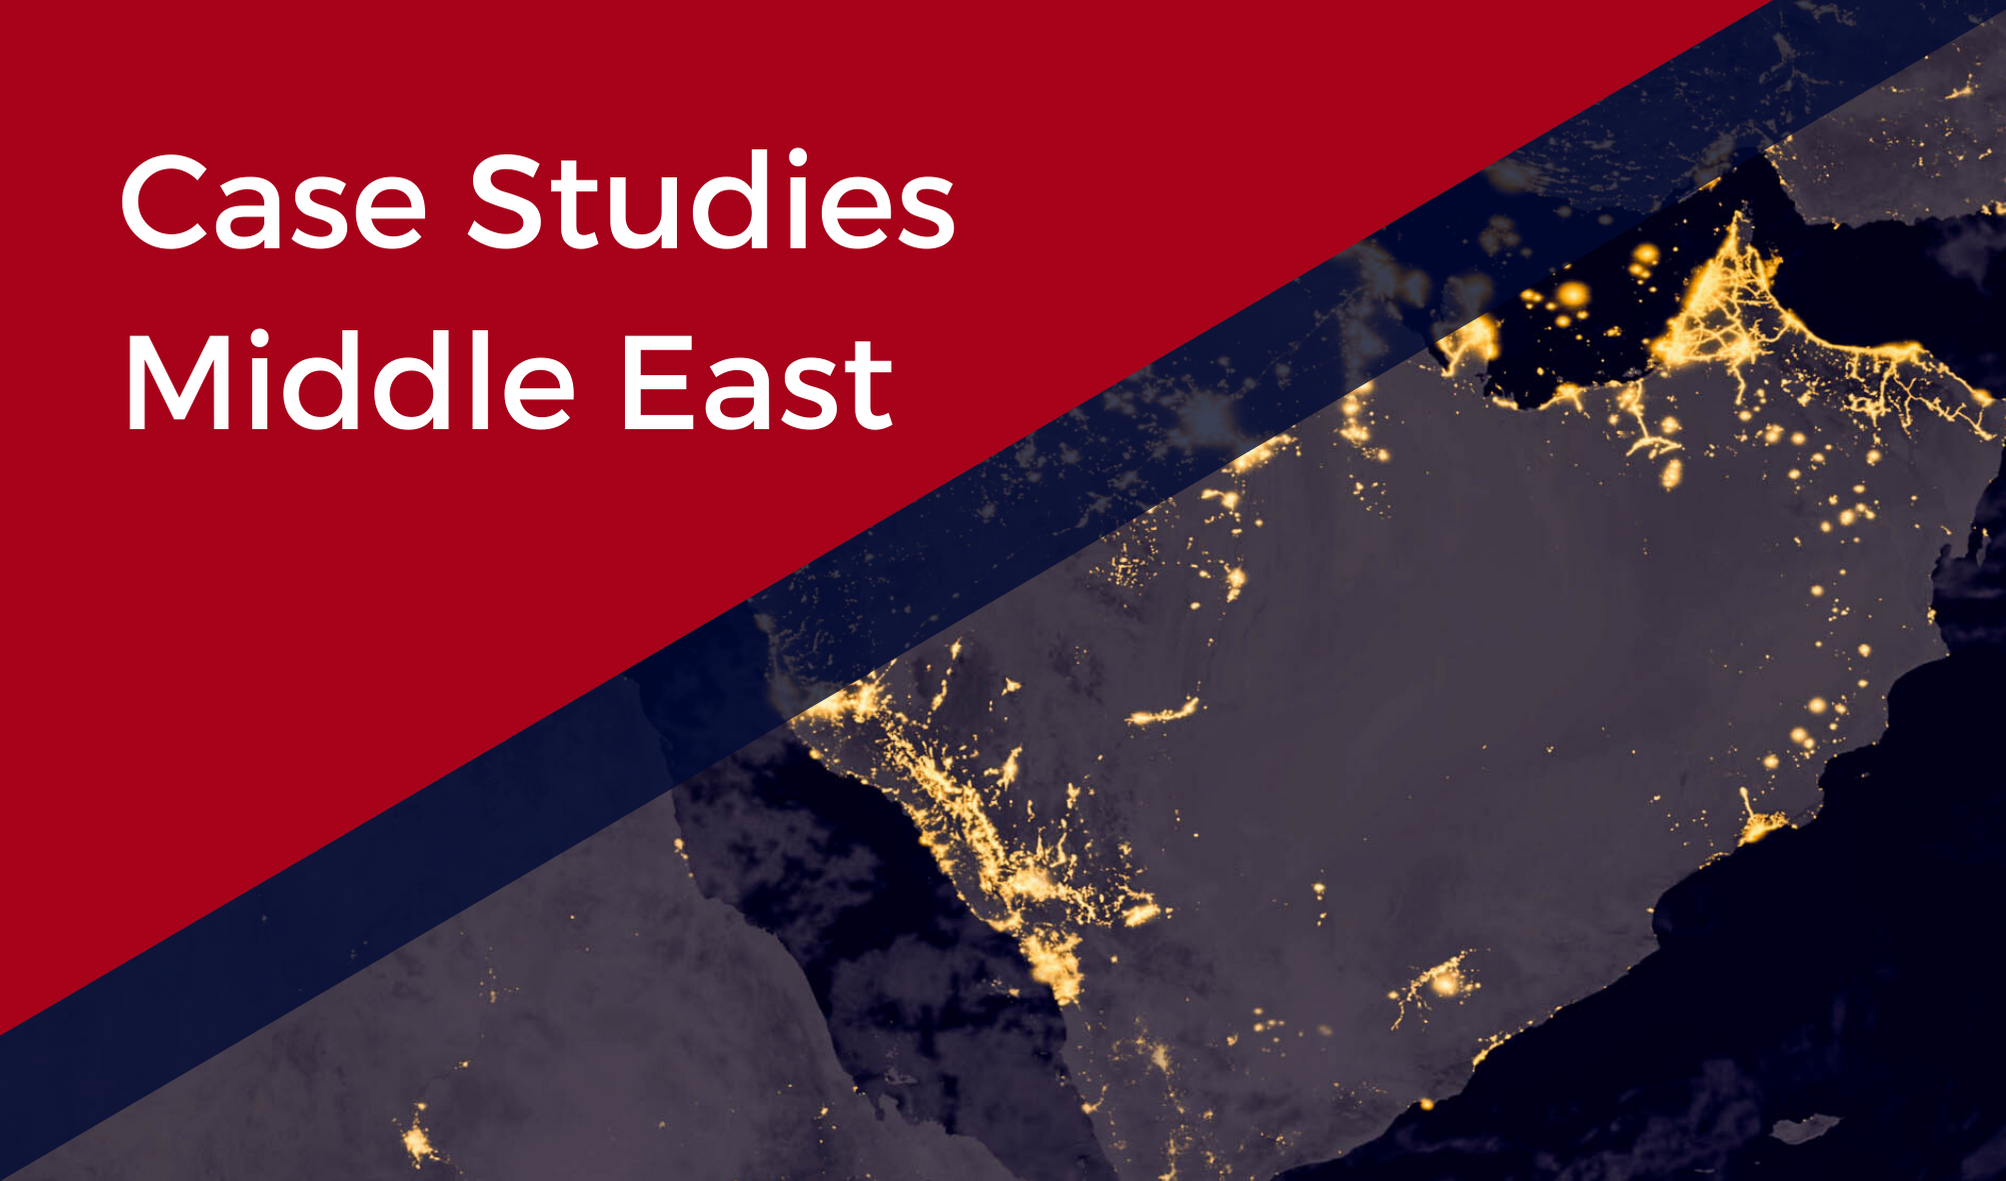 Middle East Case Studies